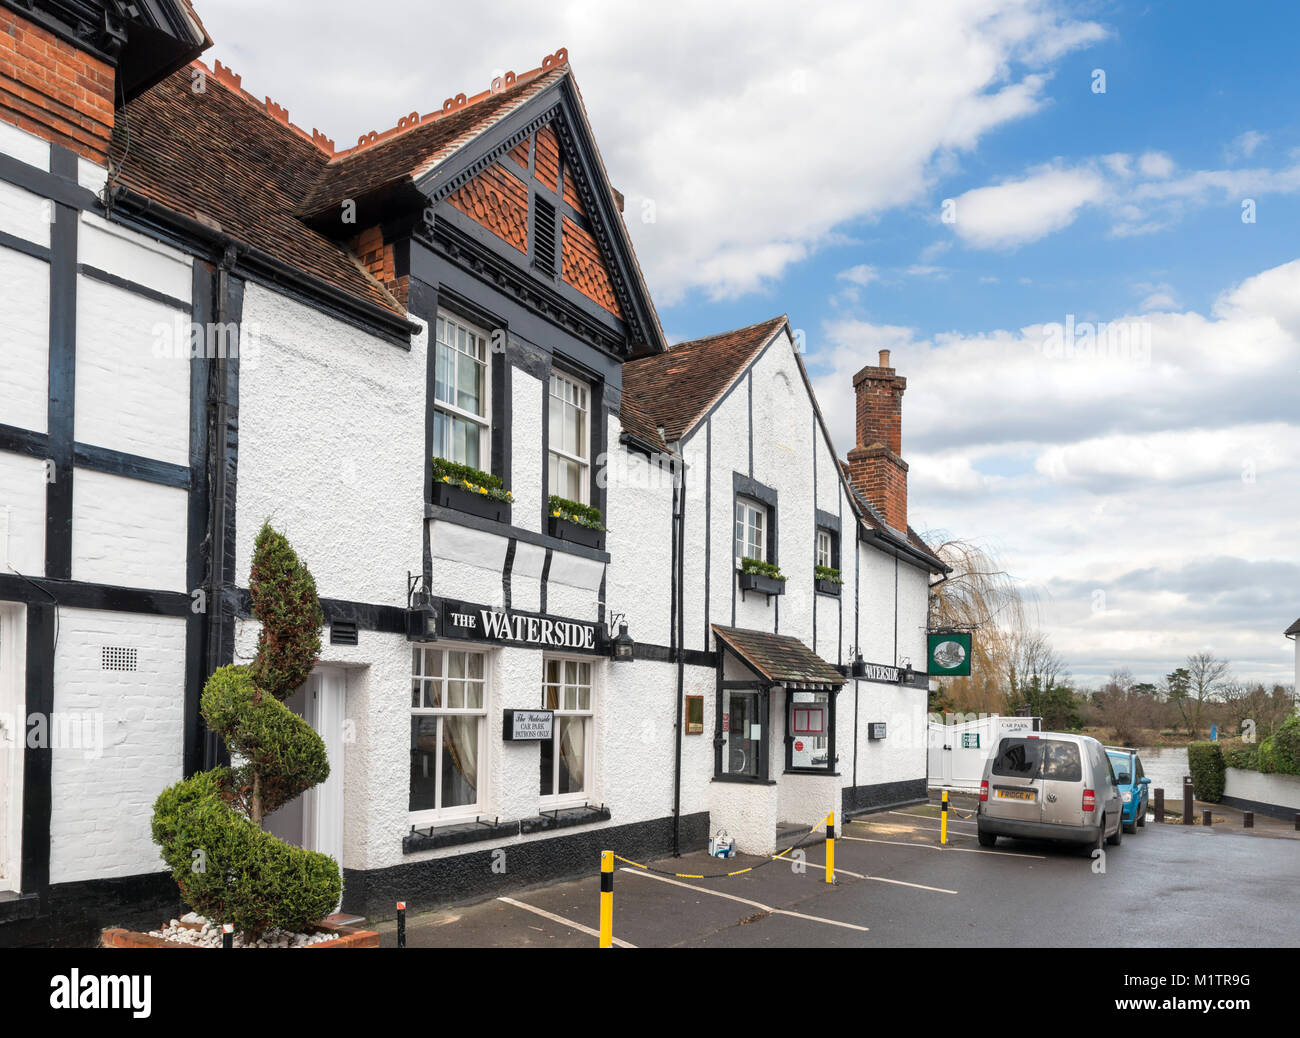 The Waterside Inn, Bray, Maidenhead, Berkshire, England, UK. The restaurant is one of only five restaurants in the - Stock Image